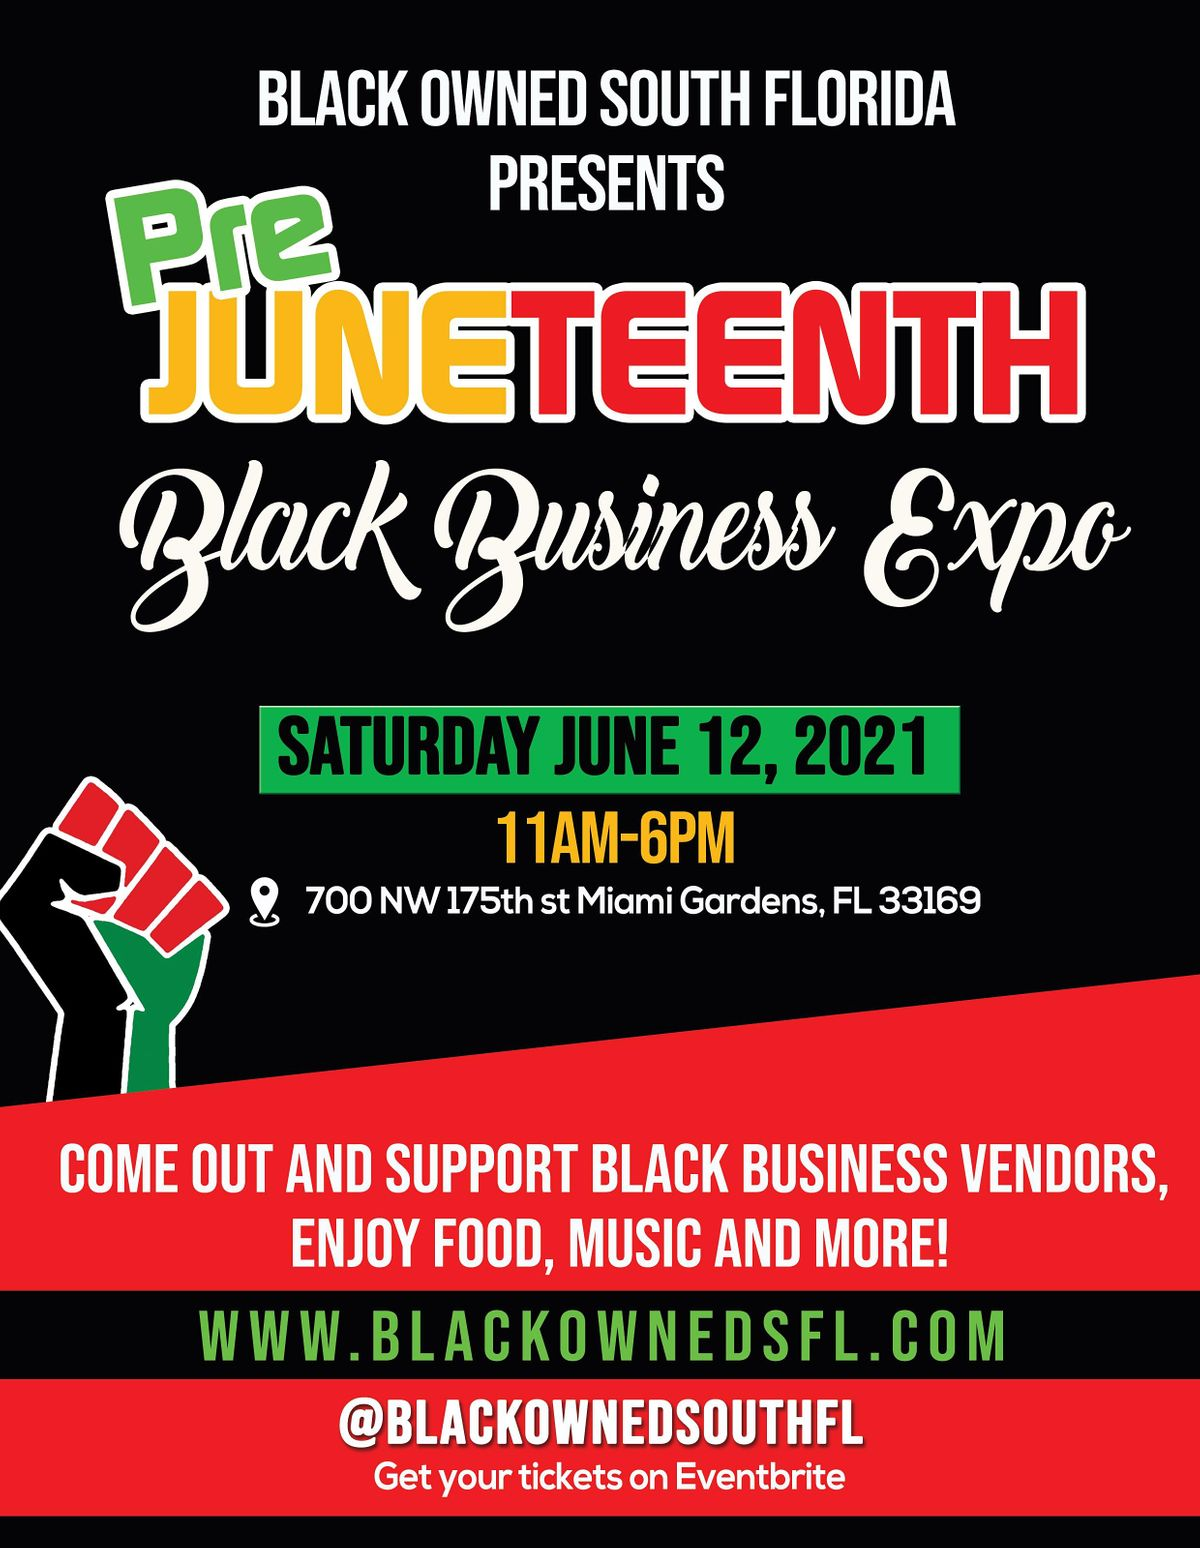 Pre Juneteenth Black Business Expo